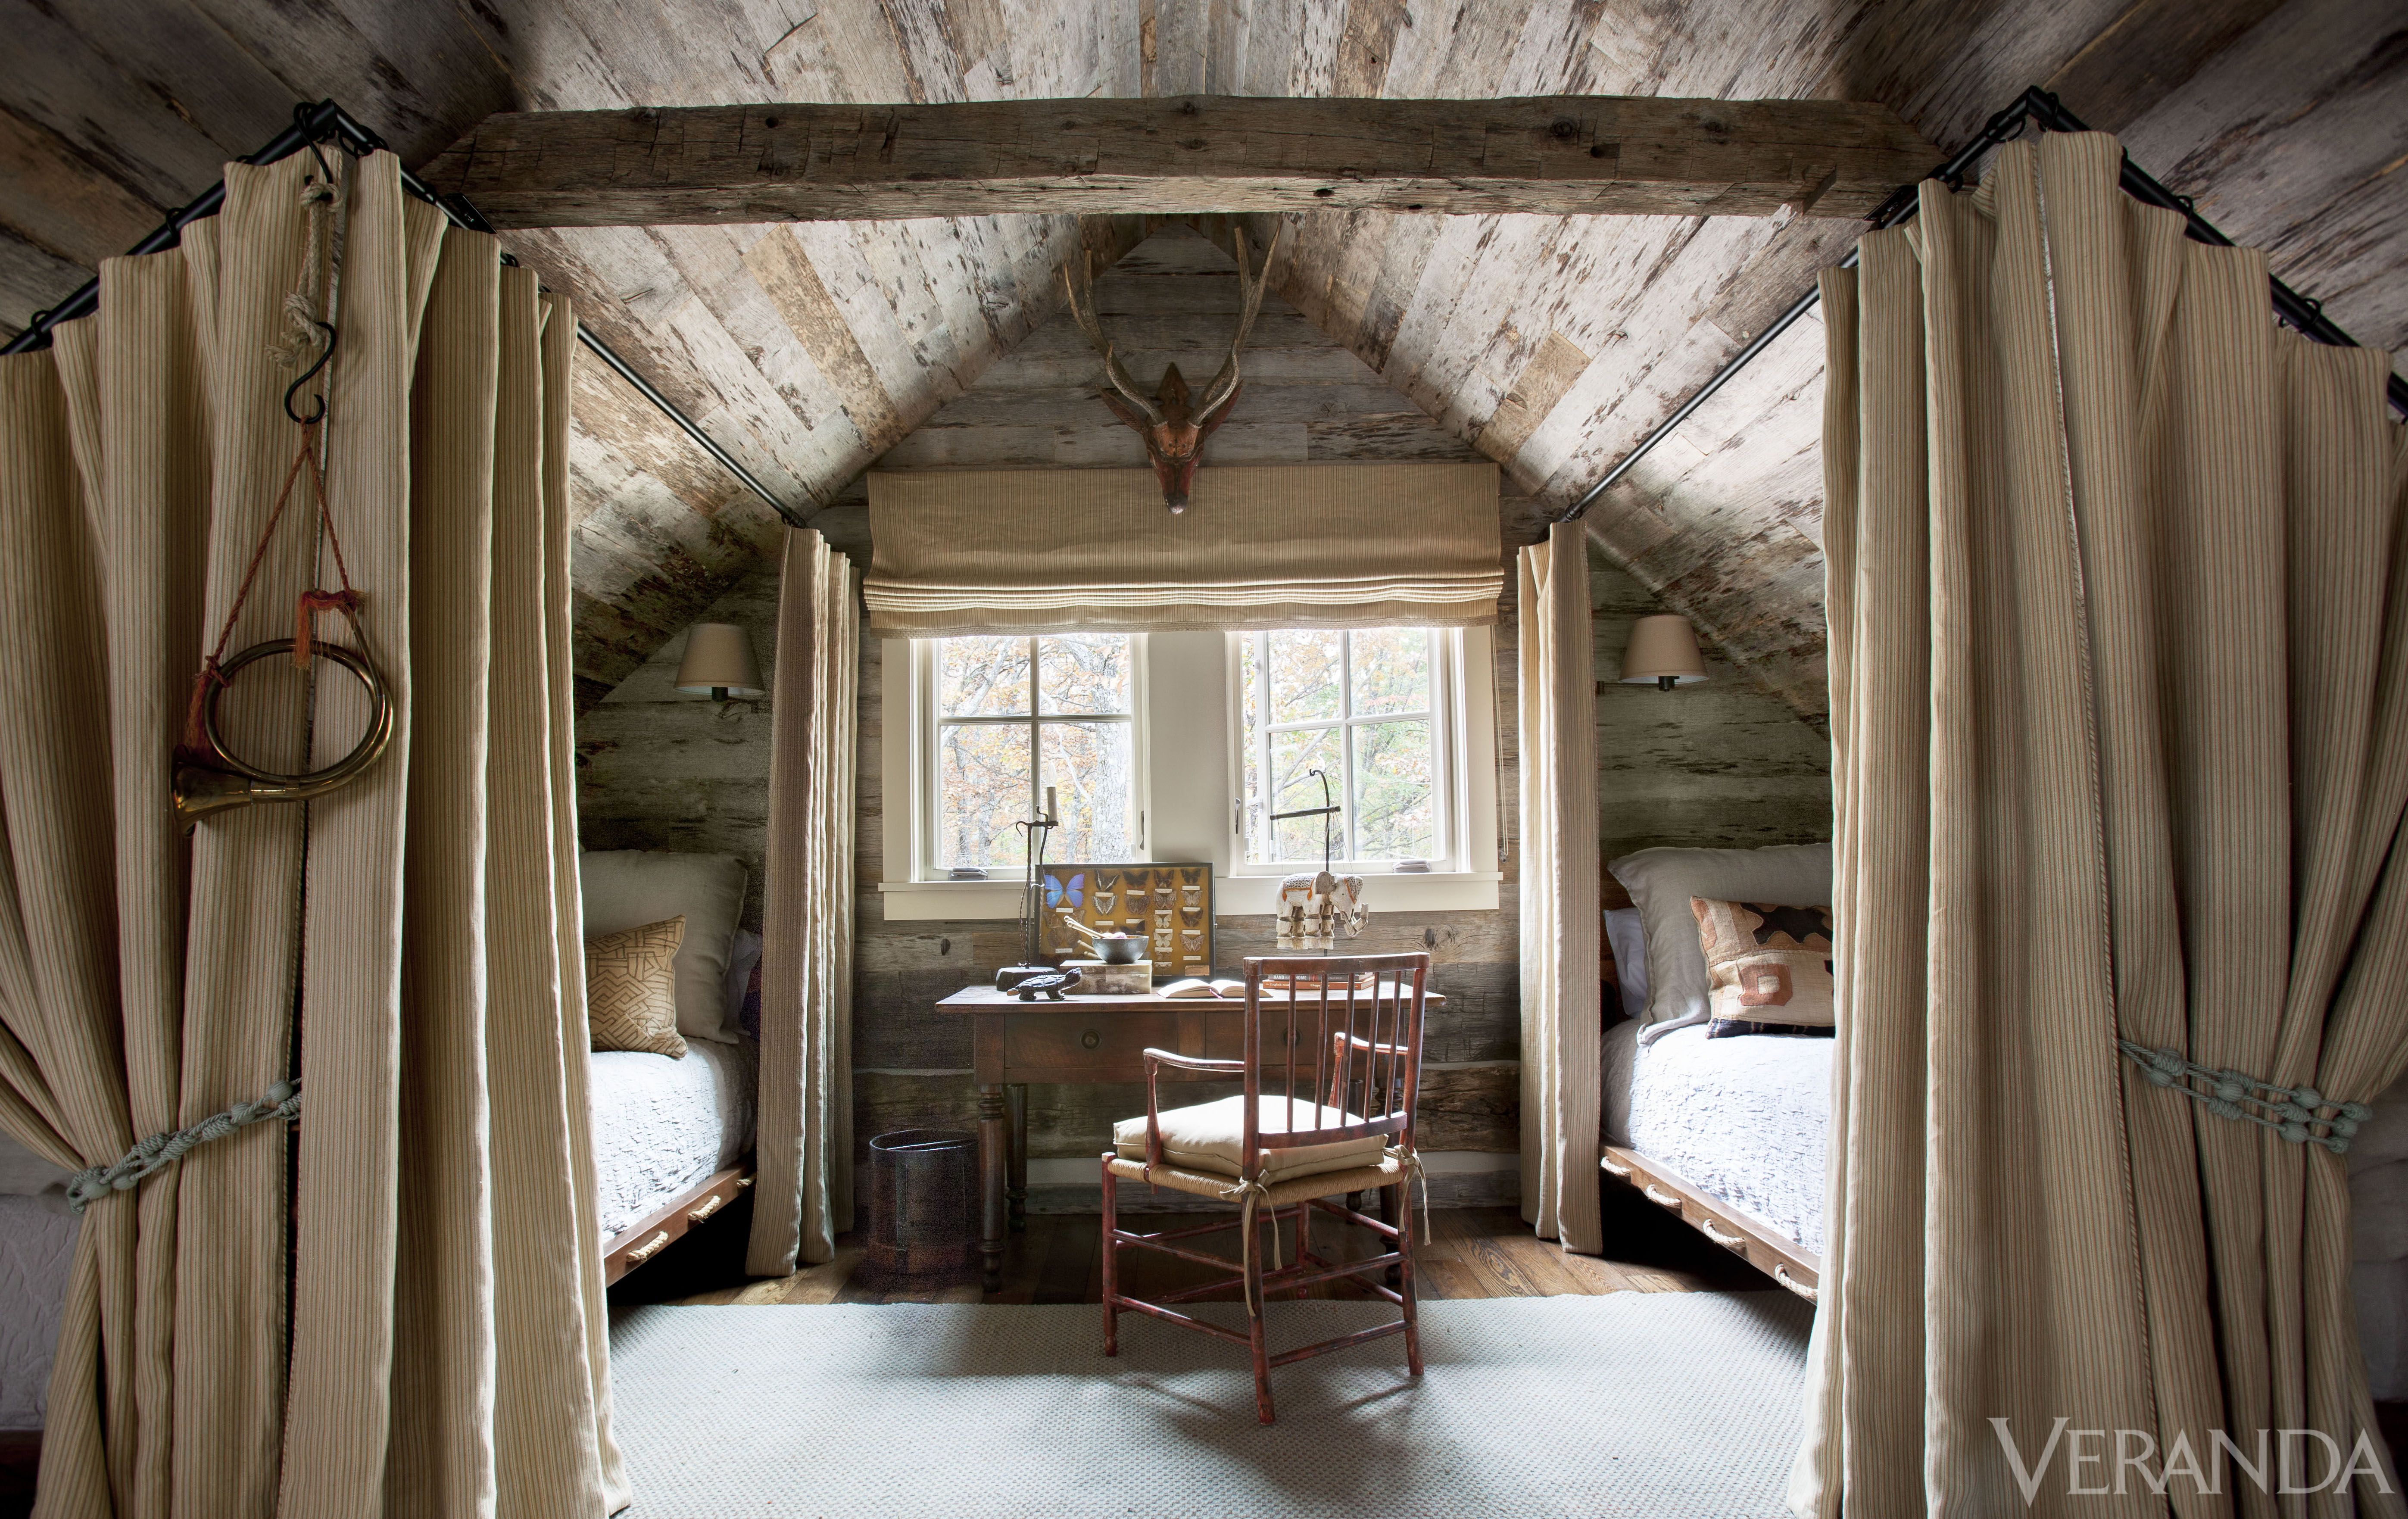 Loft bedroom privacy  In a sleeping loft curtained rope beds are tucked under the eaves